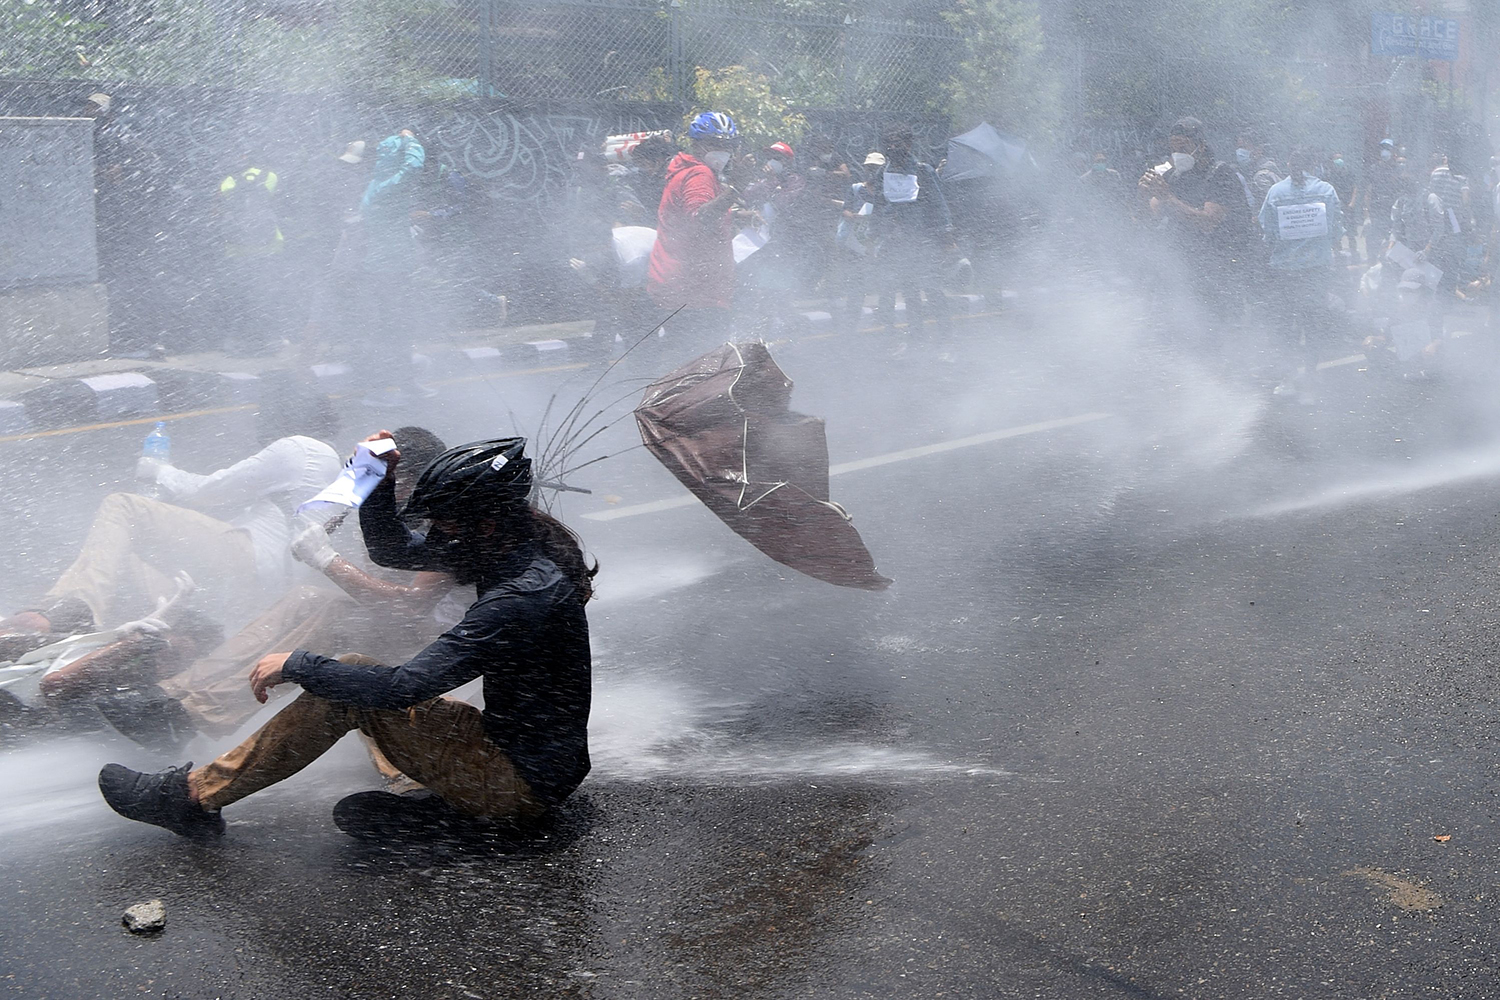 Police use a water cannon to disperse demonstrators protesting against the government's coronavirus policies in Kathmandu, Nepal, on June 9. PRAKASH MATHEMA/AFP via Getty Images